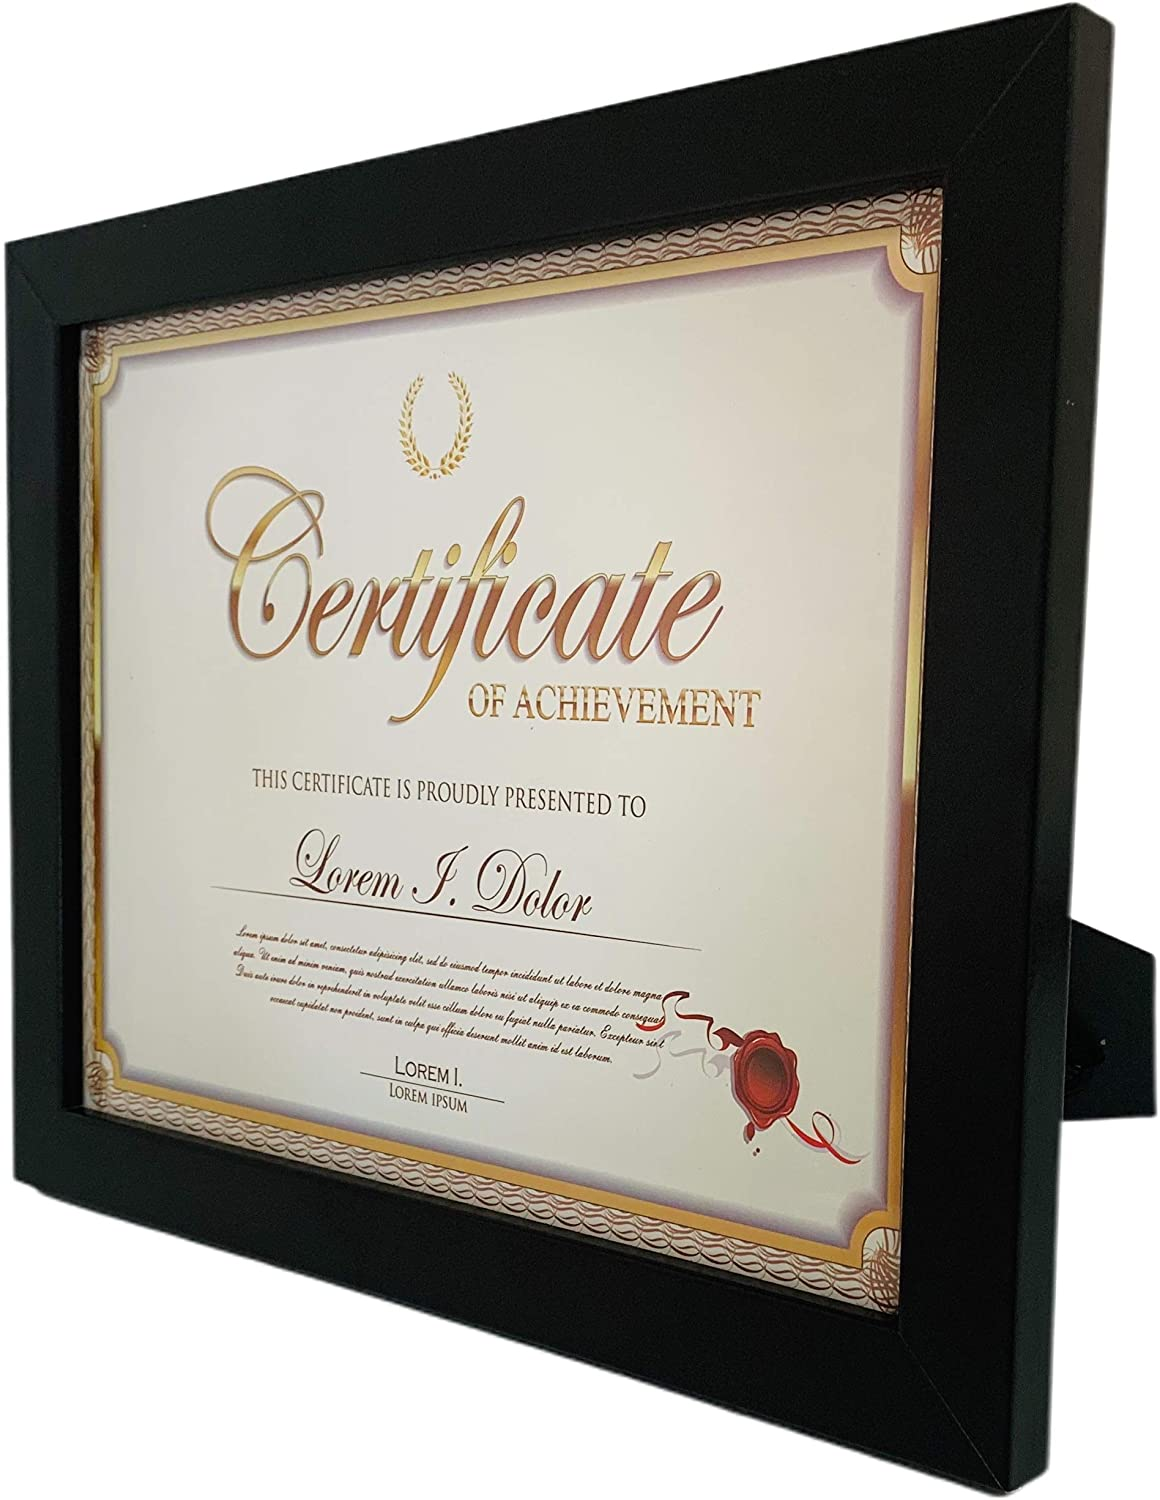 Glass Front Frame Amo Black 8x12 Picture Frame Smooth Finish for Wall or Table 1 inch Wide Border